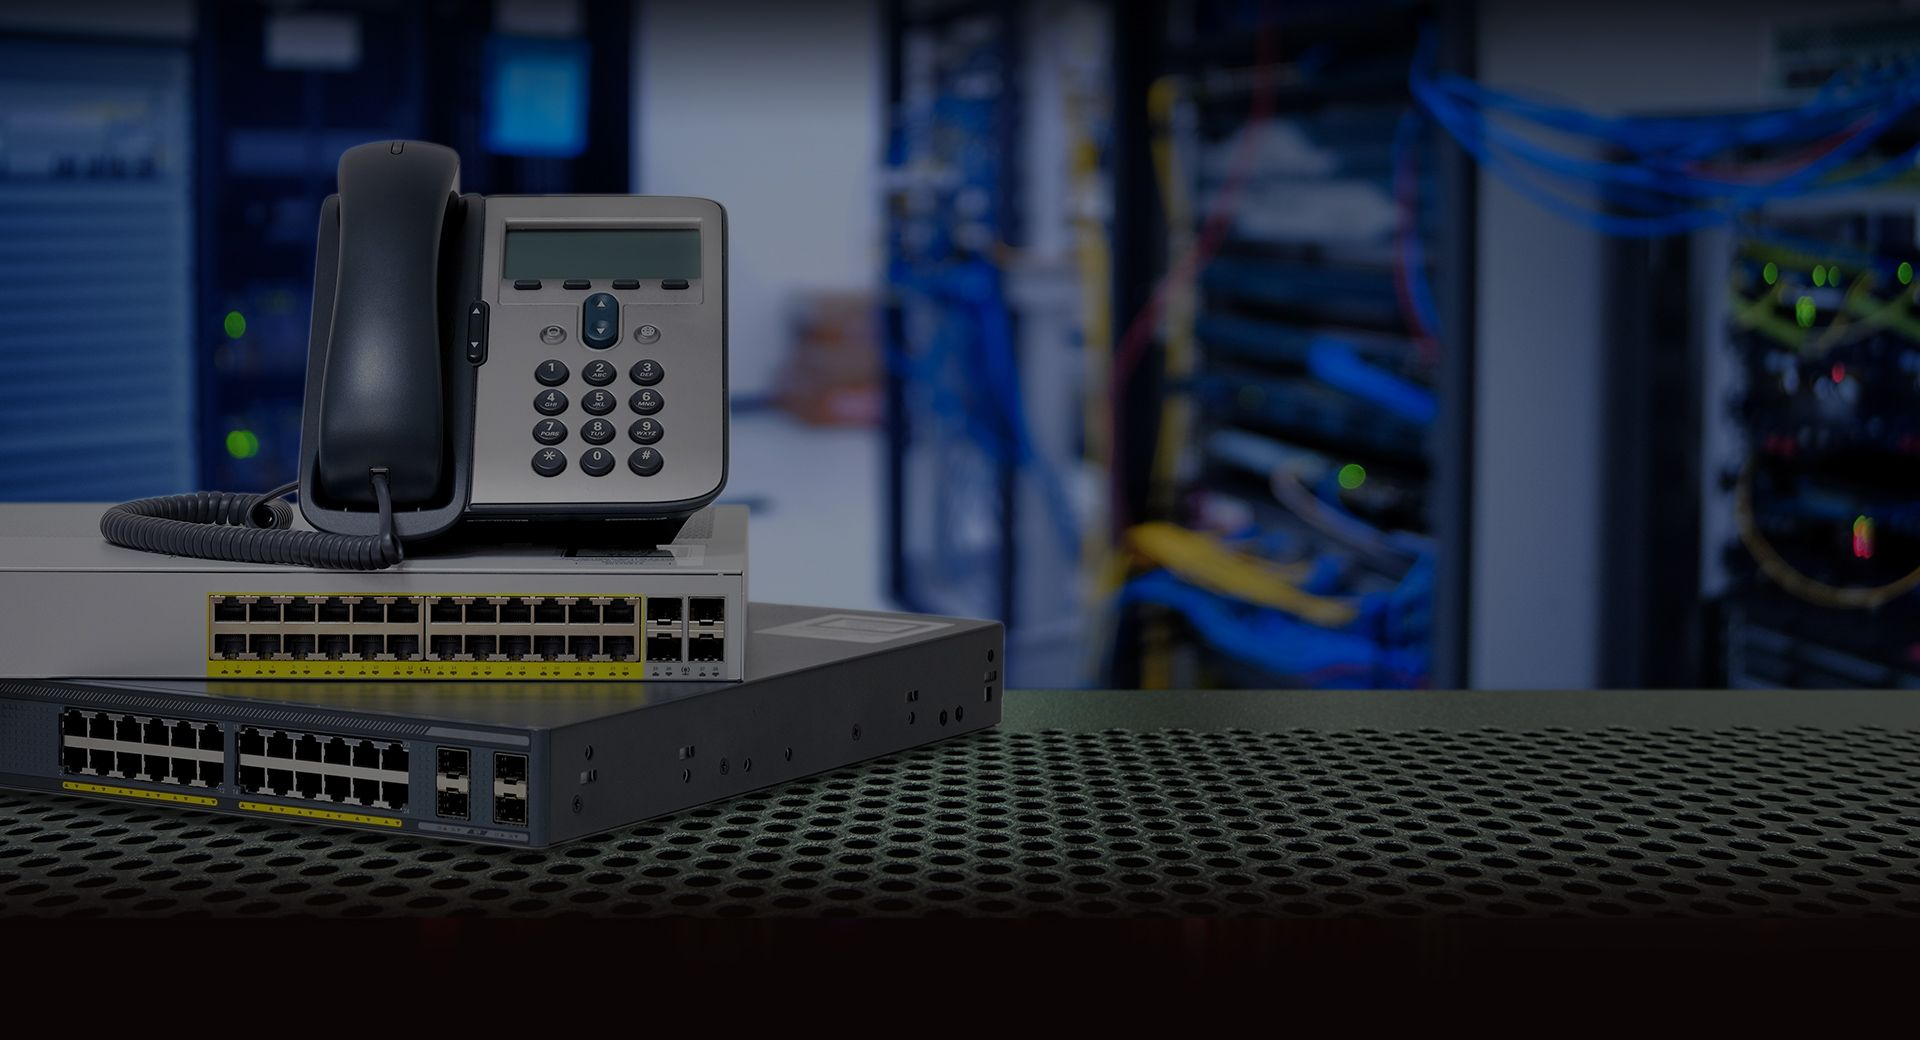 Datamax Unified Communication as a Service (UCaaS)